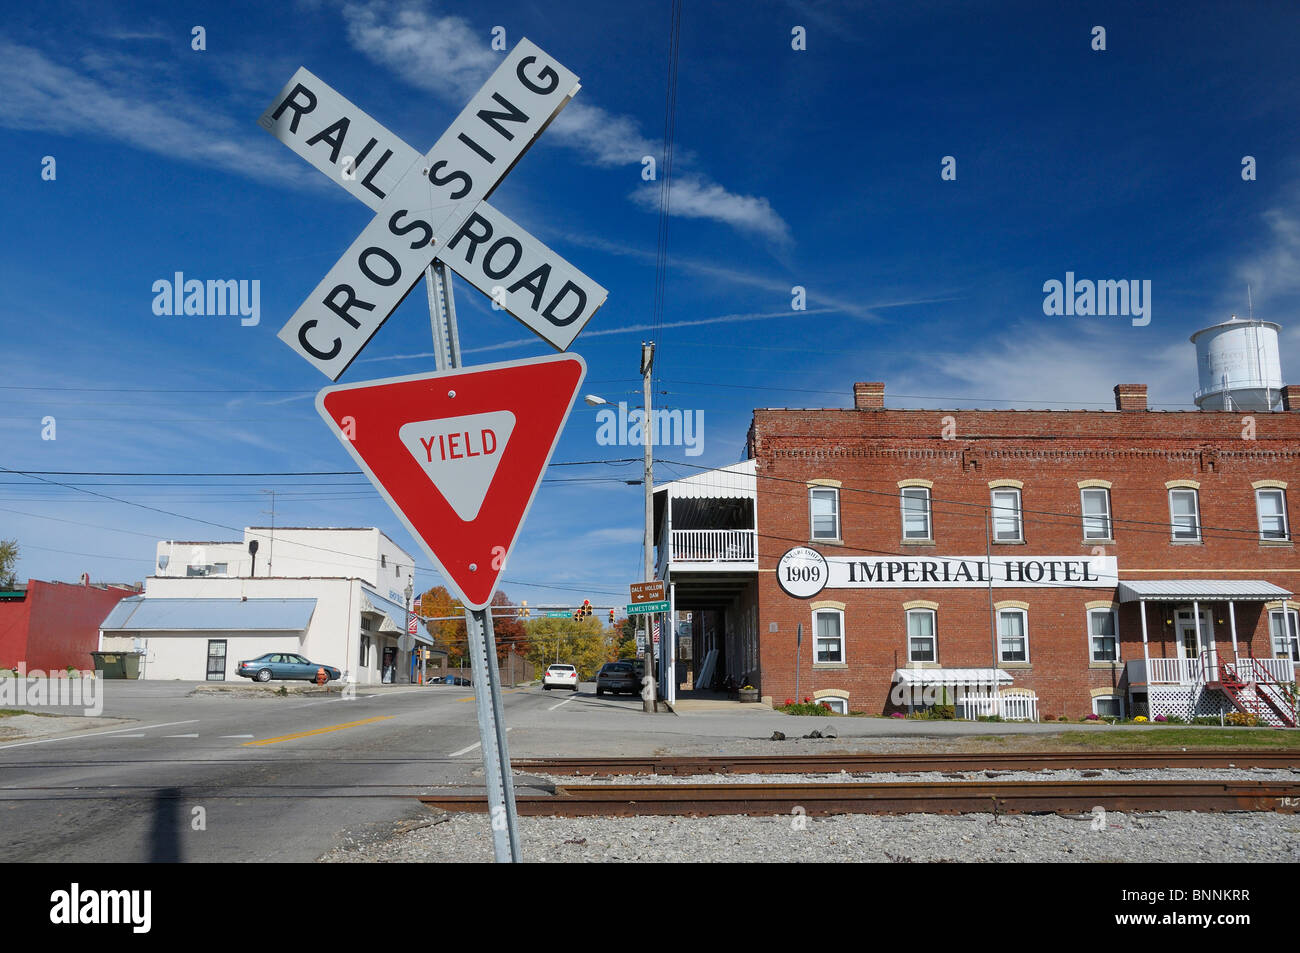 1909 Imperial Hotel Monterey Tennessee USA America United States of America rails Railroad crossing sign - Stock Image